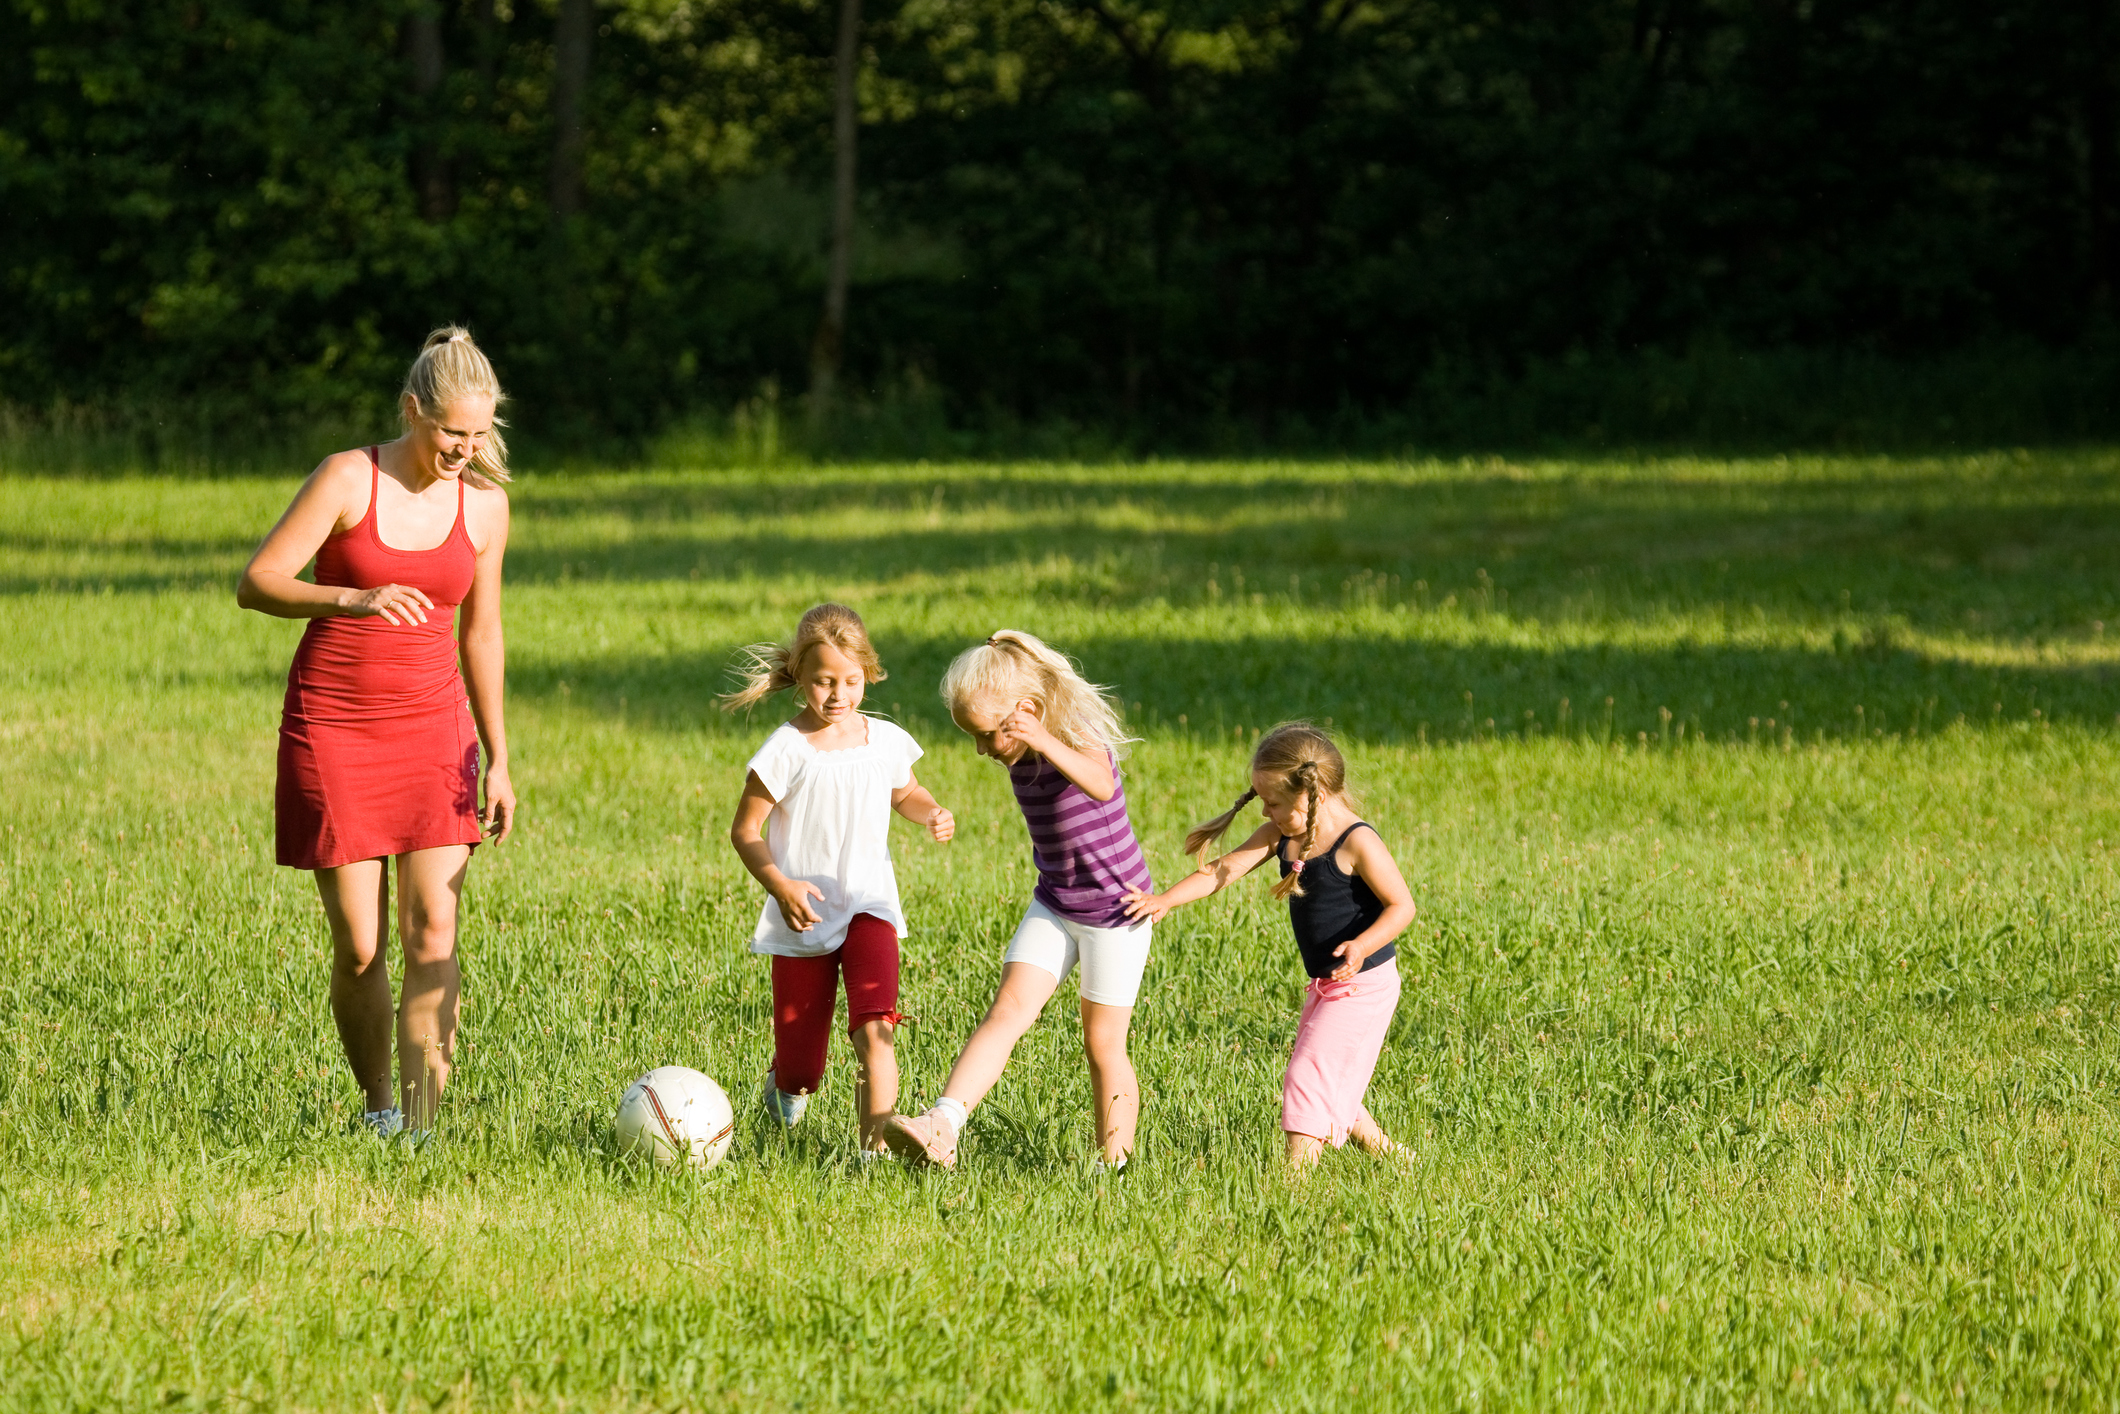 a mom and her three kids playing in the field